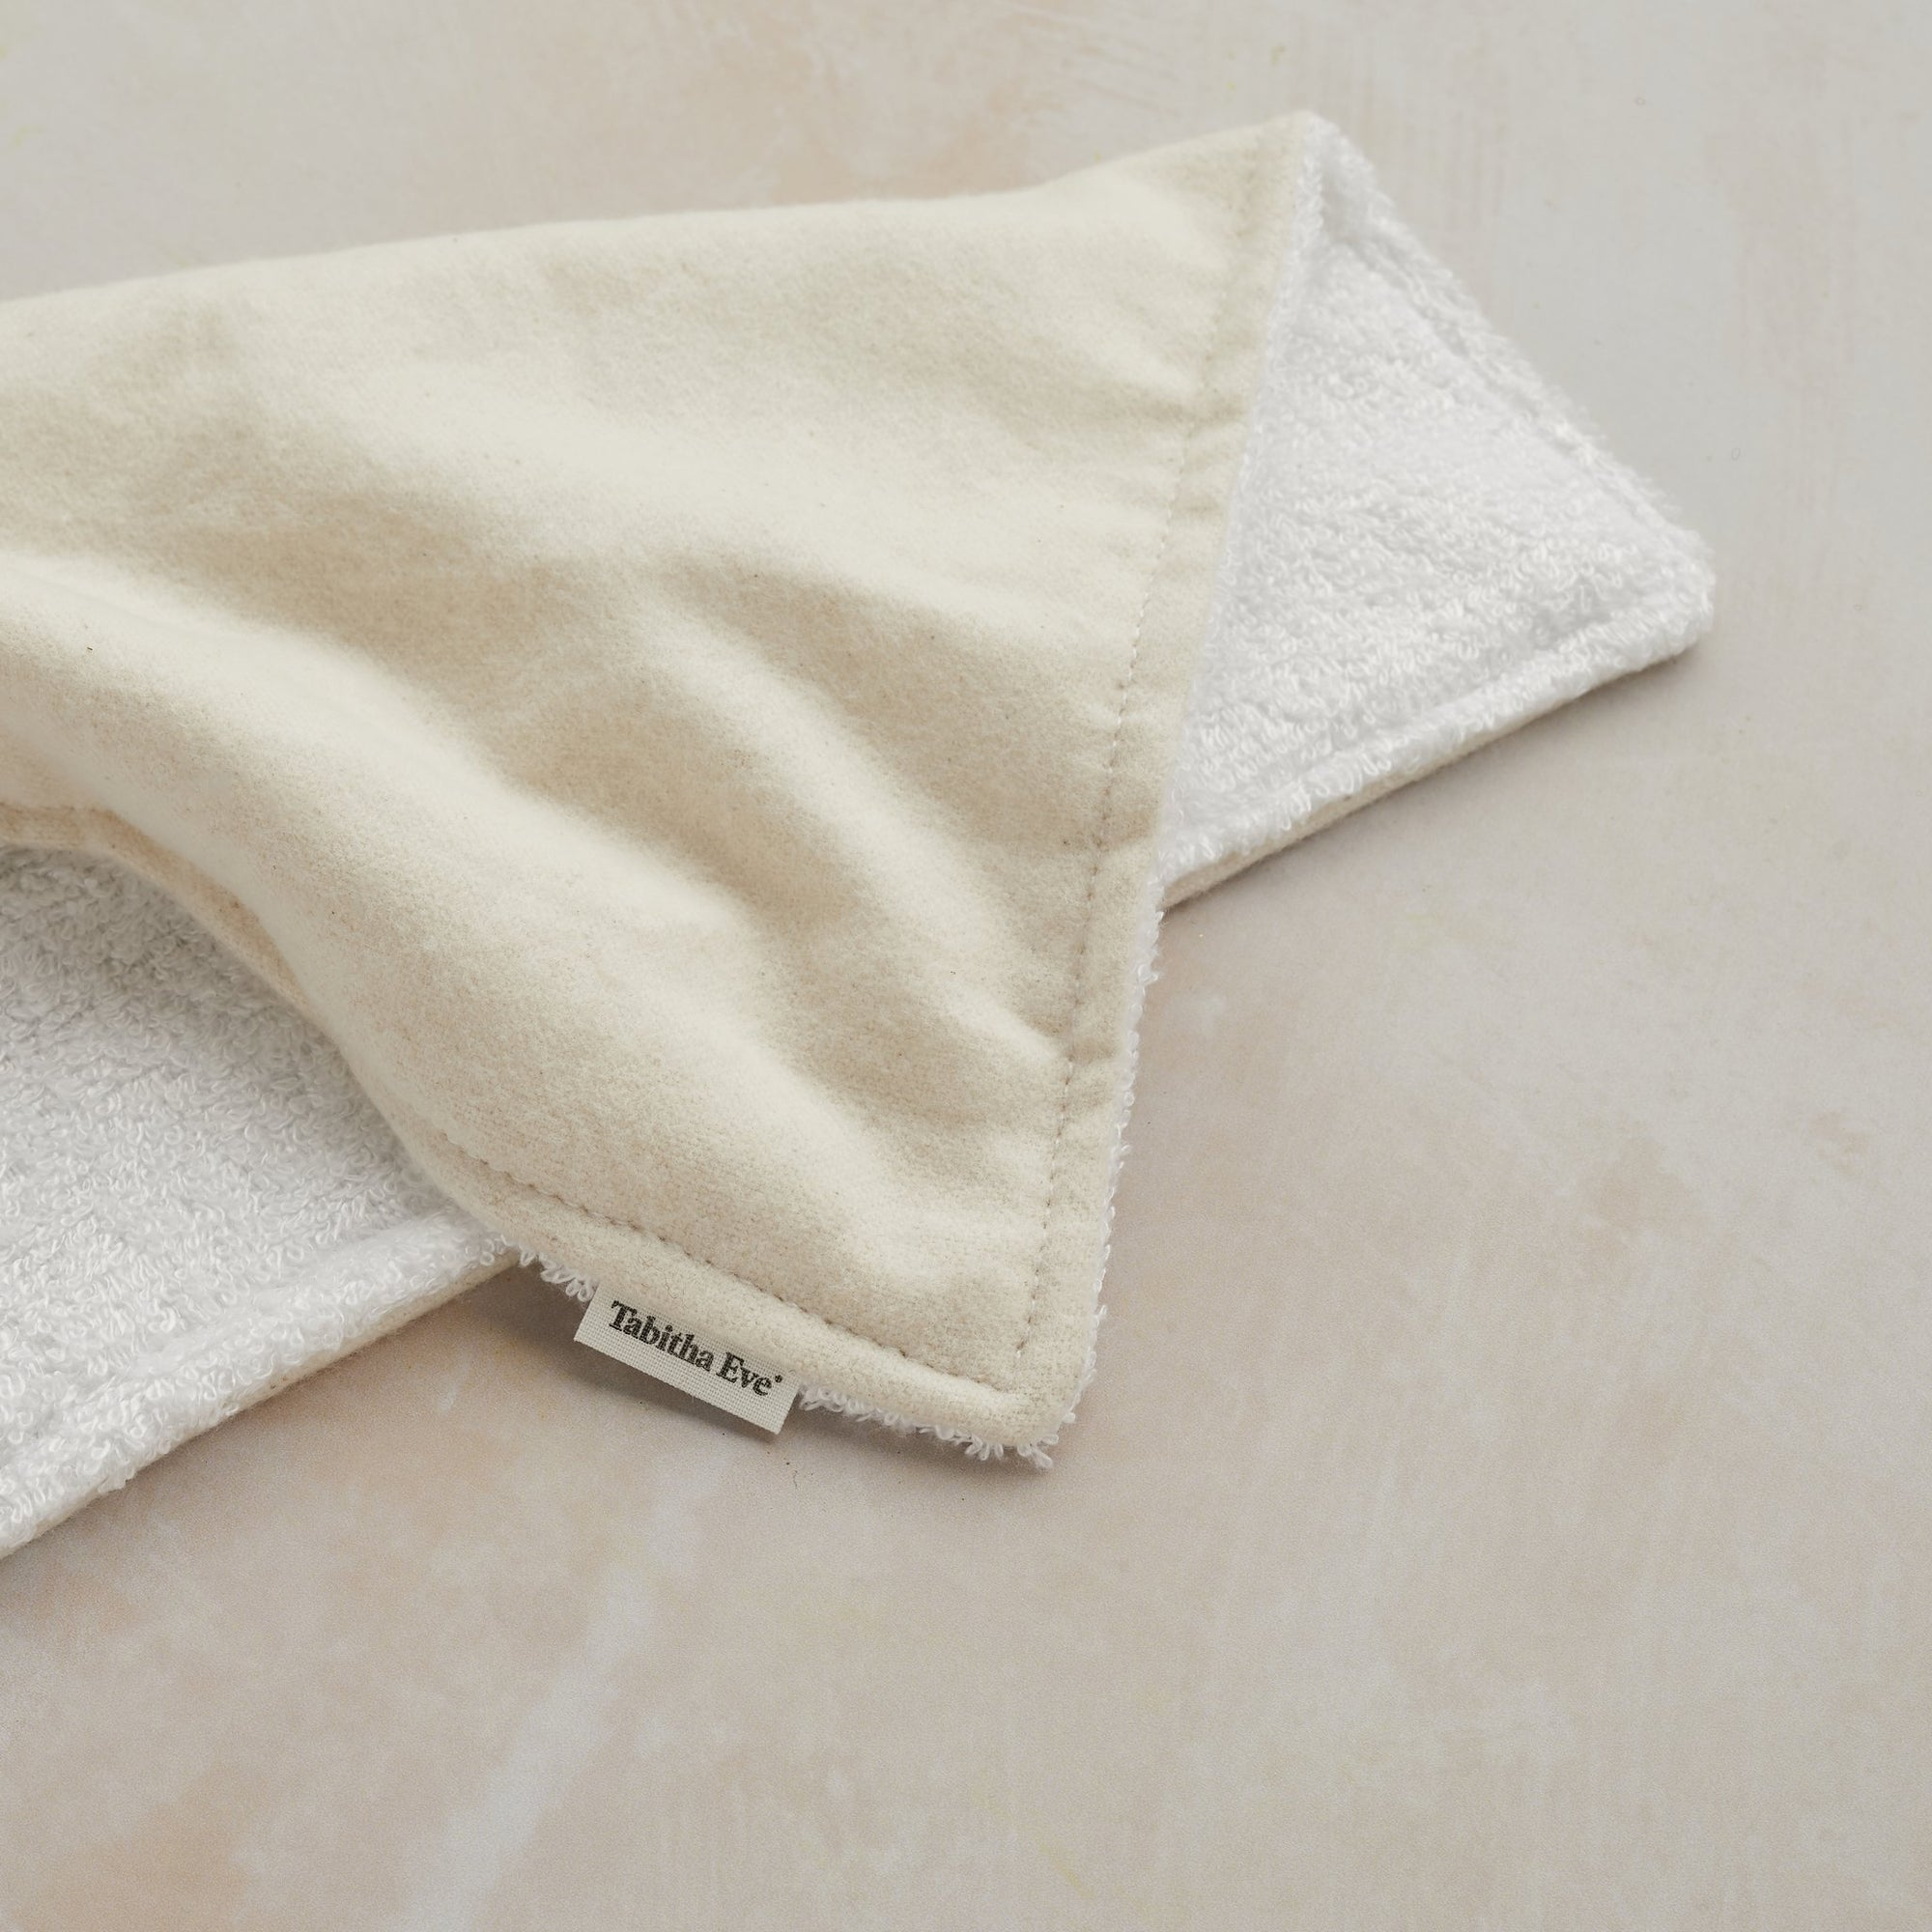 Multi Purpose Cloths - Natural Cotton | Wipes - The Naughty Shrew